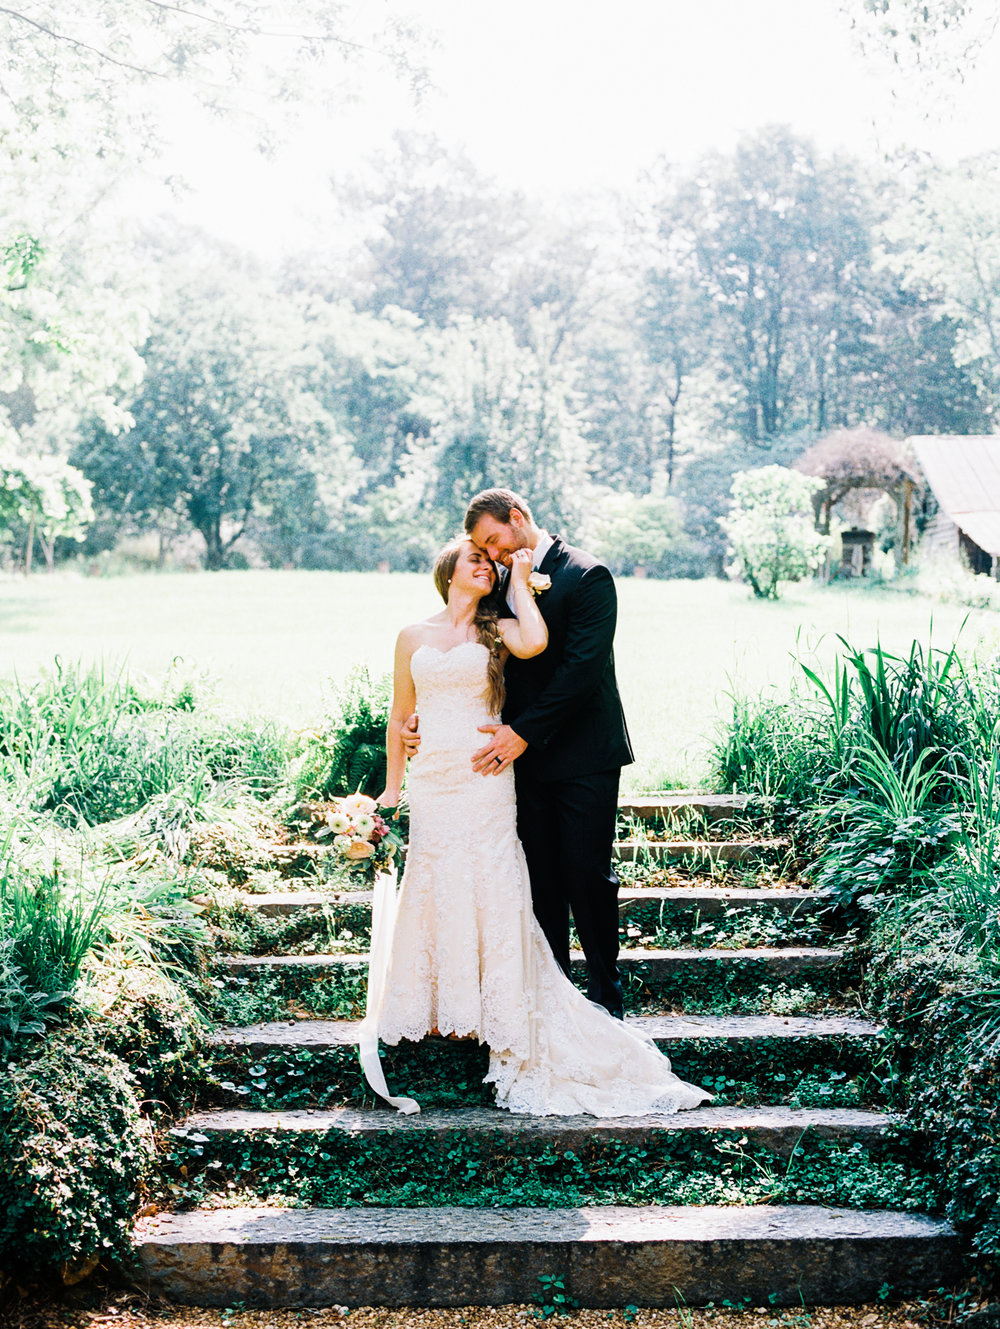 christinadavisphotography-gardenweddinginspiration_romanticwedding11.jpg